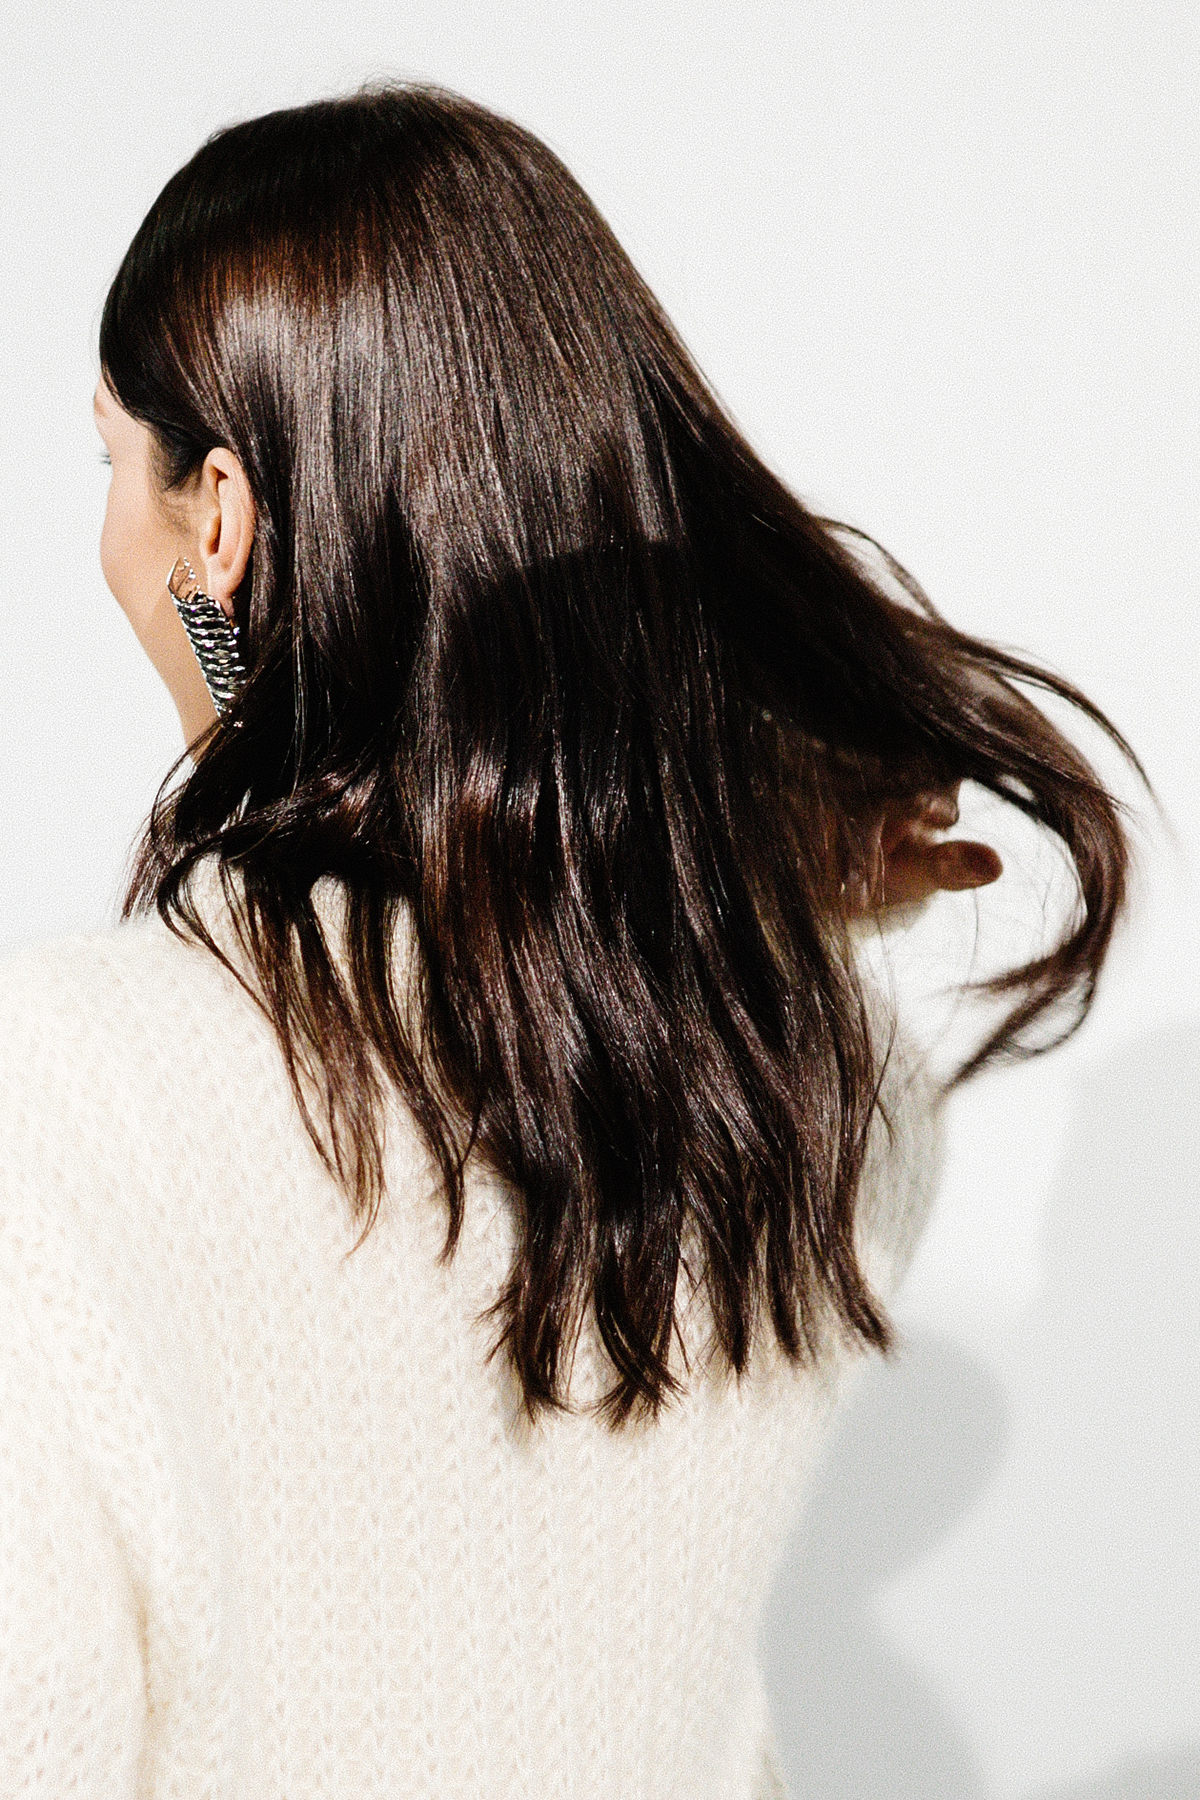 10 Tricks for Shinier, Glossier Hair